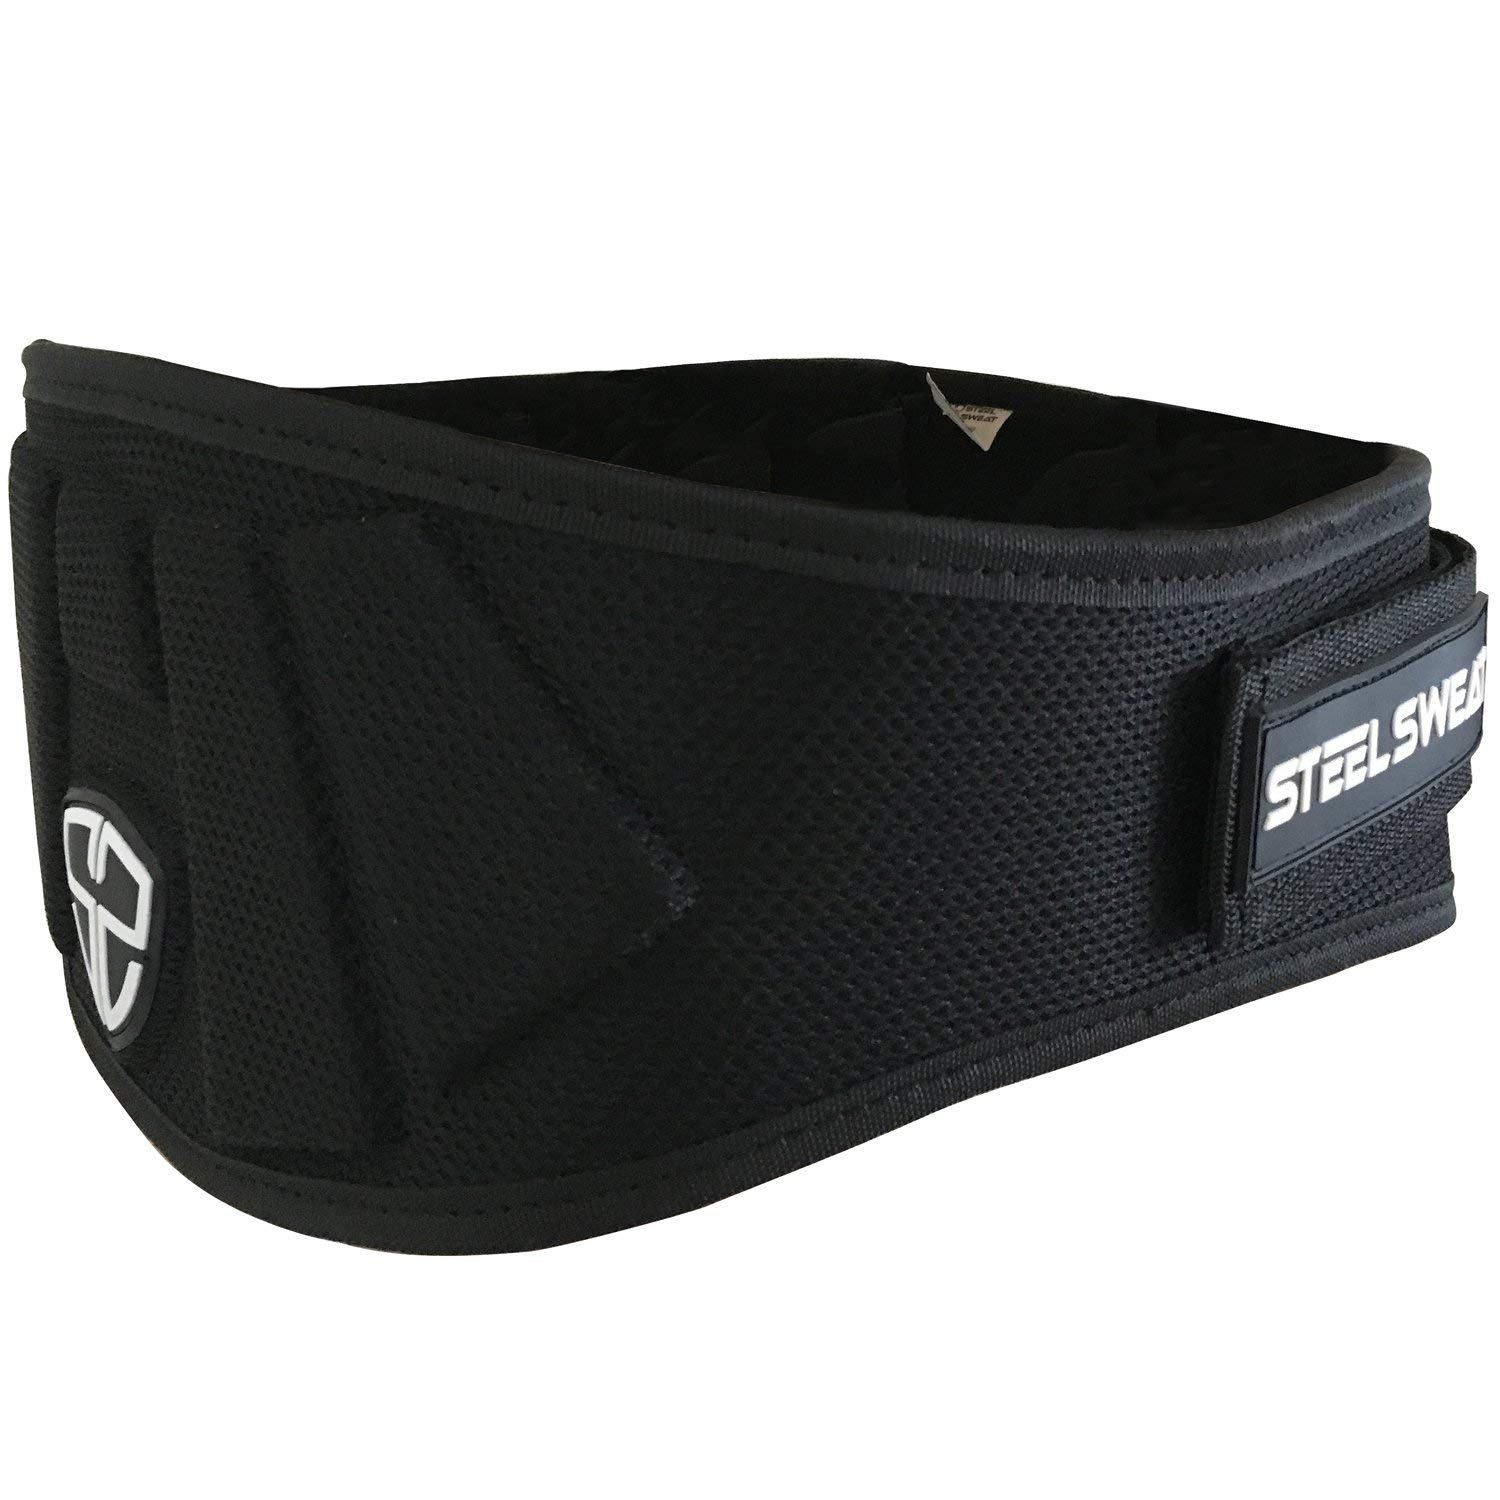 Steel Sweat Weight Lifting Belt - Nylon 6-inch Firm & Comfortable Back Support, Best for Workouts at The Gym, Weightlifting or Crossfit. Easily Adjustable MAXE Black Small